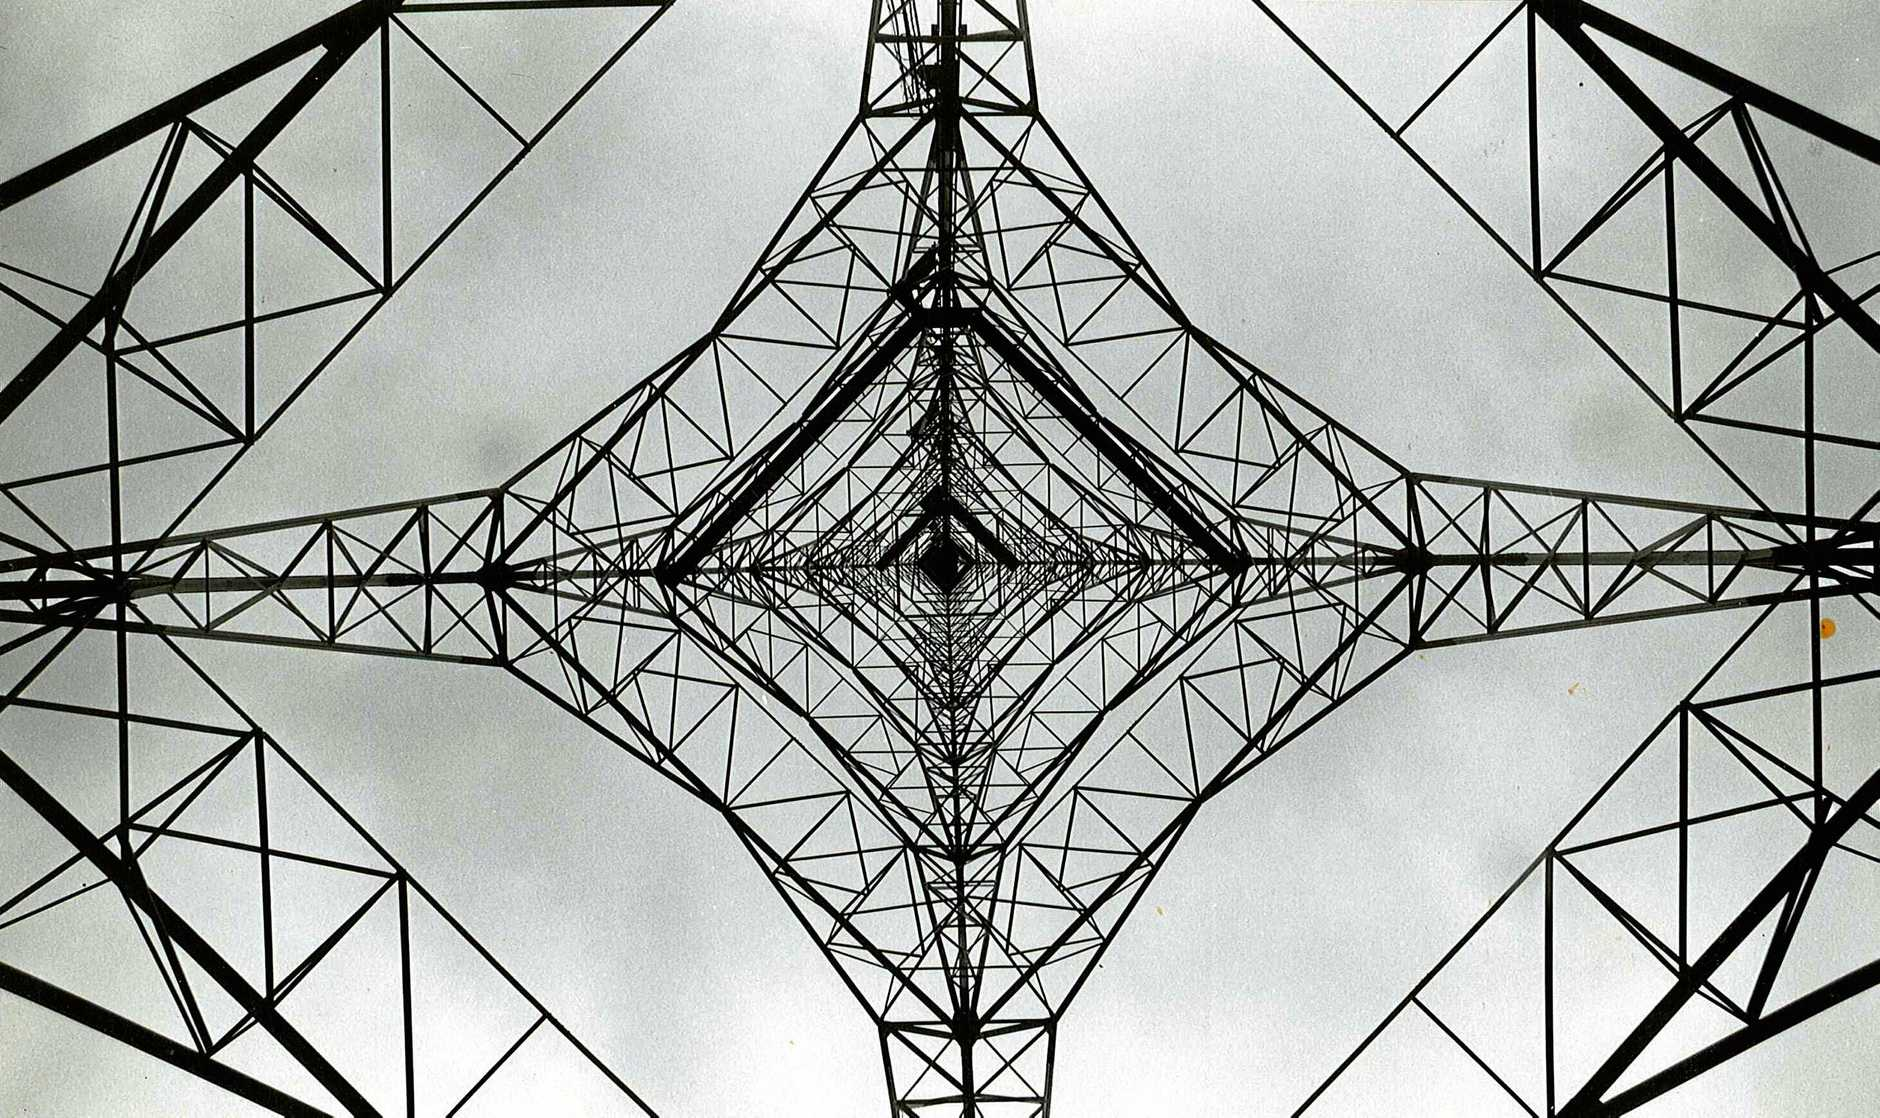 TV transmission towers are down.